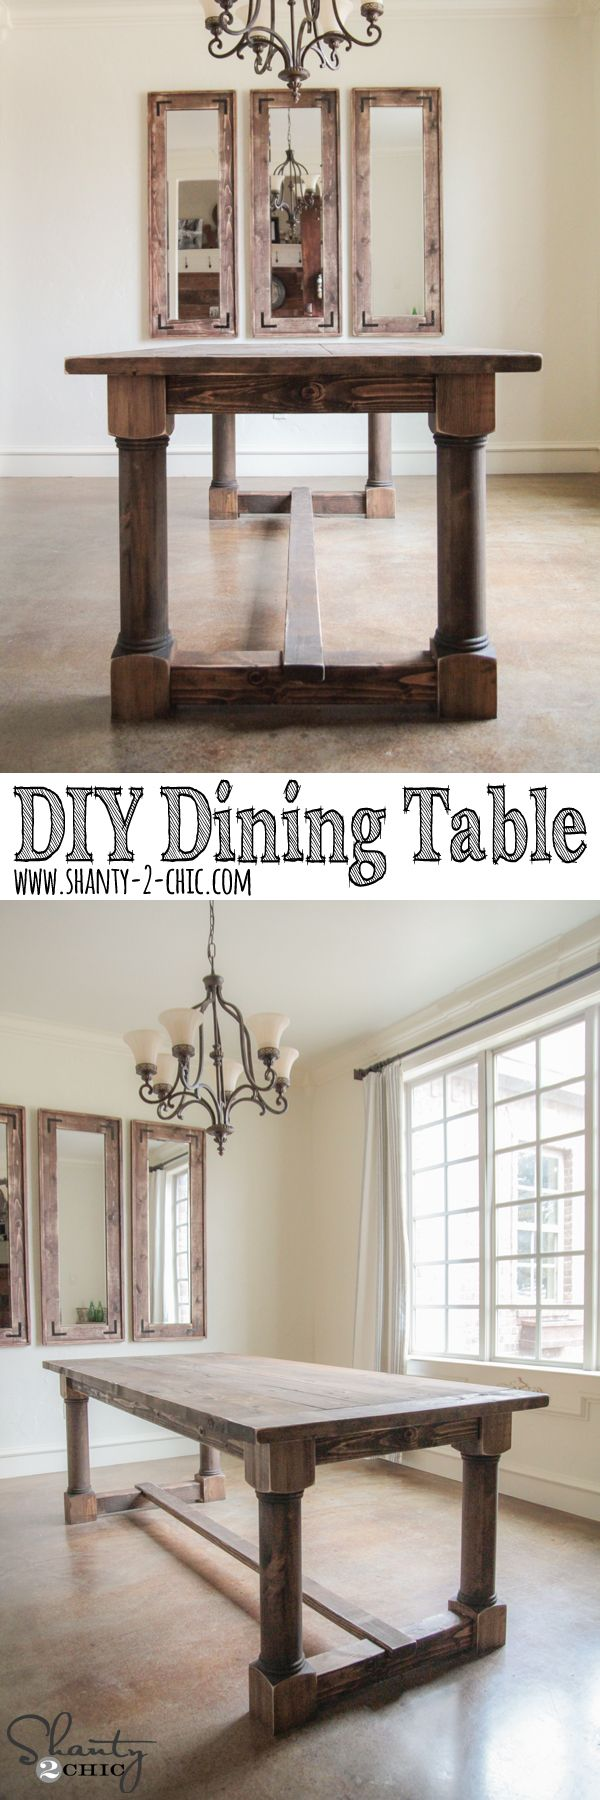 building plans dining room table woodworking projects plans